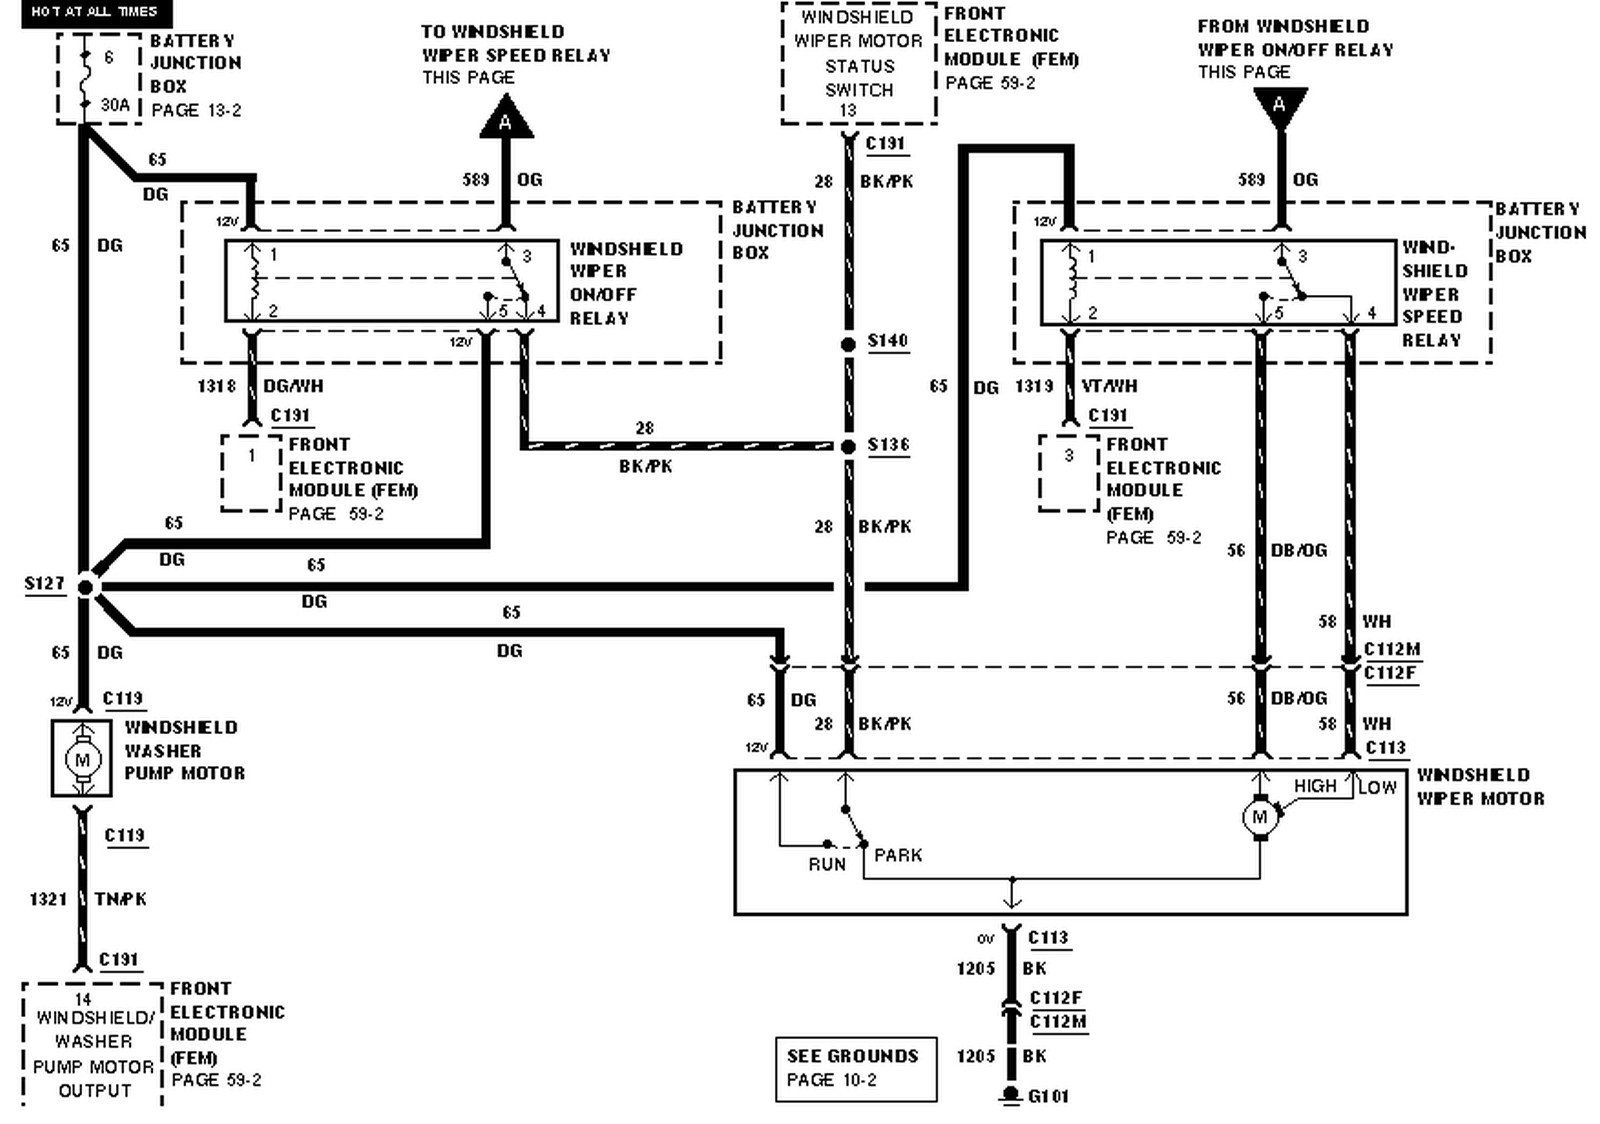 2002 Ford Windstar Fuel Pump Wiring Diagram